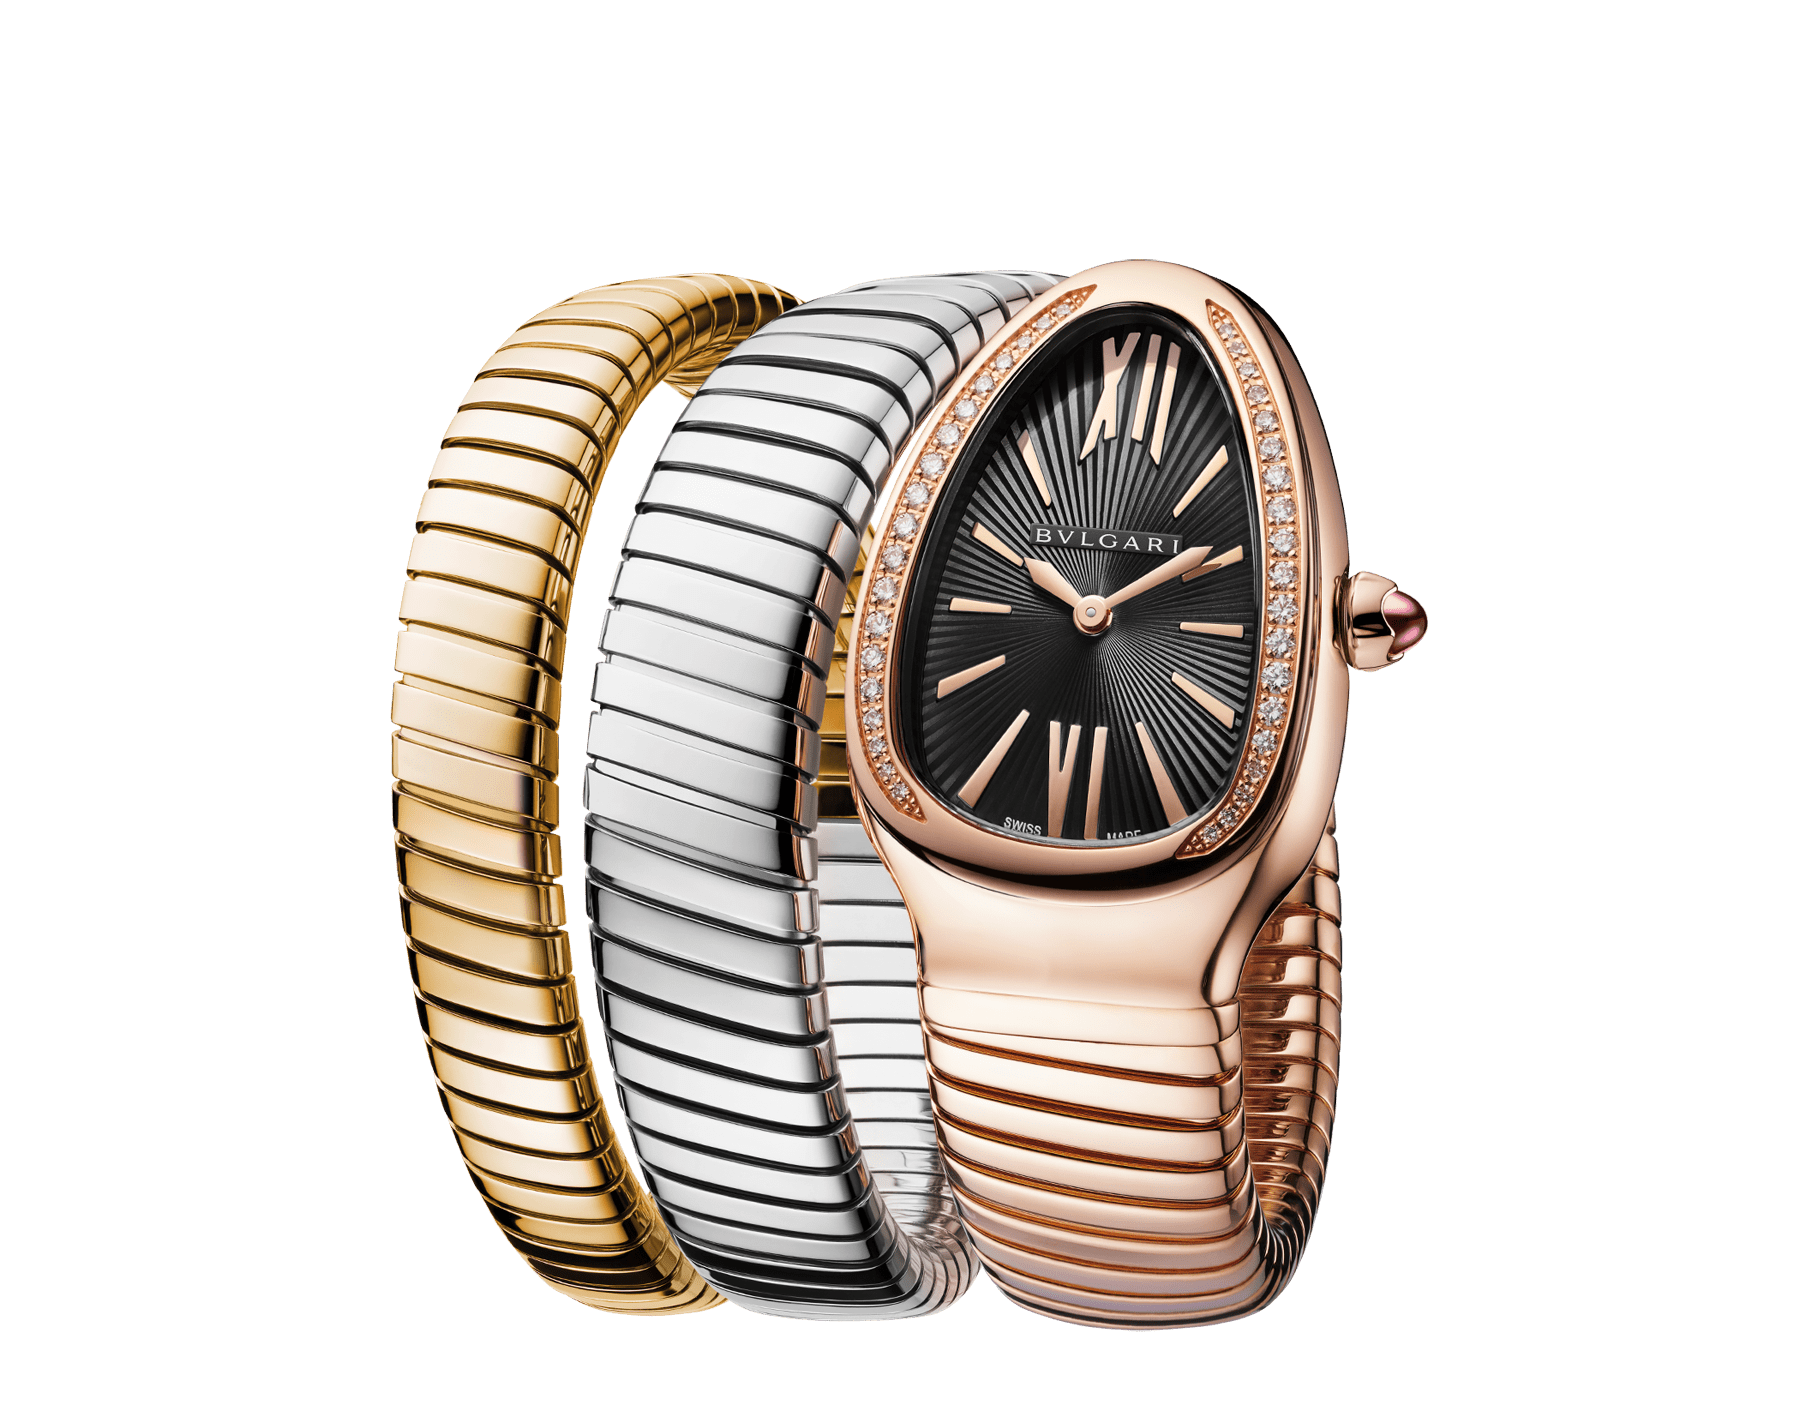 Serpenti Tubogas double spiral watch with 18 kt rose gold case set with round brilliant-cut diamonds, black opaline dial and 18 kt rose, yellow and white gold bracelet 102948 image 2